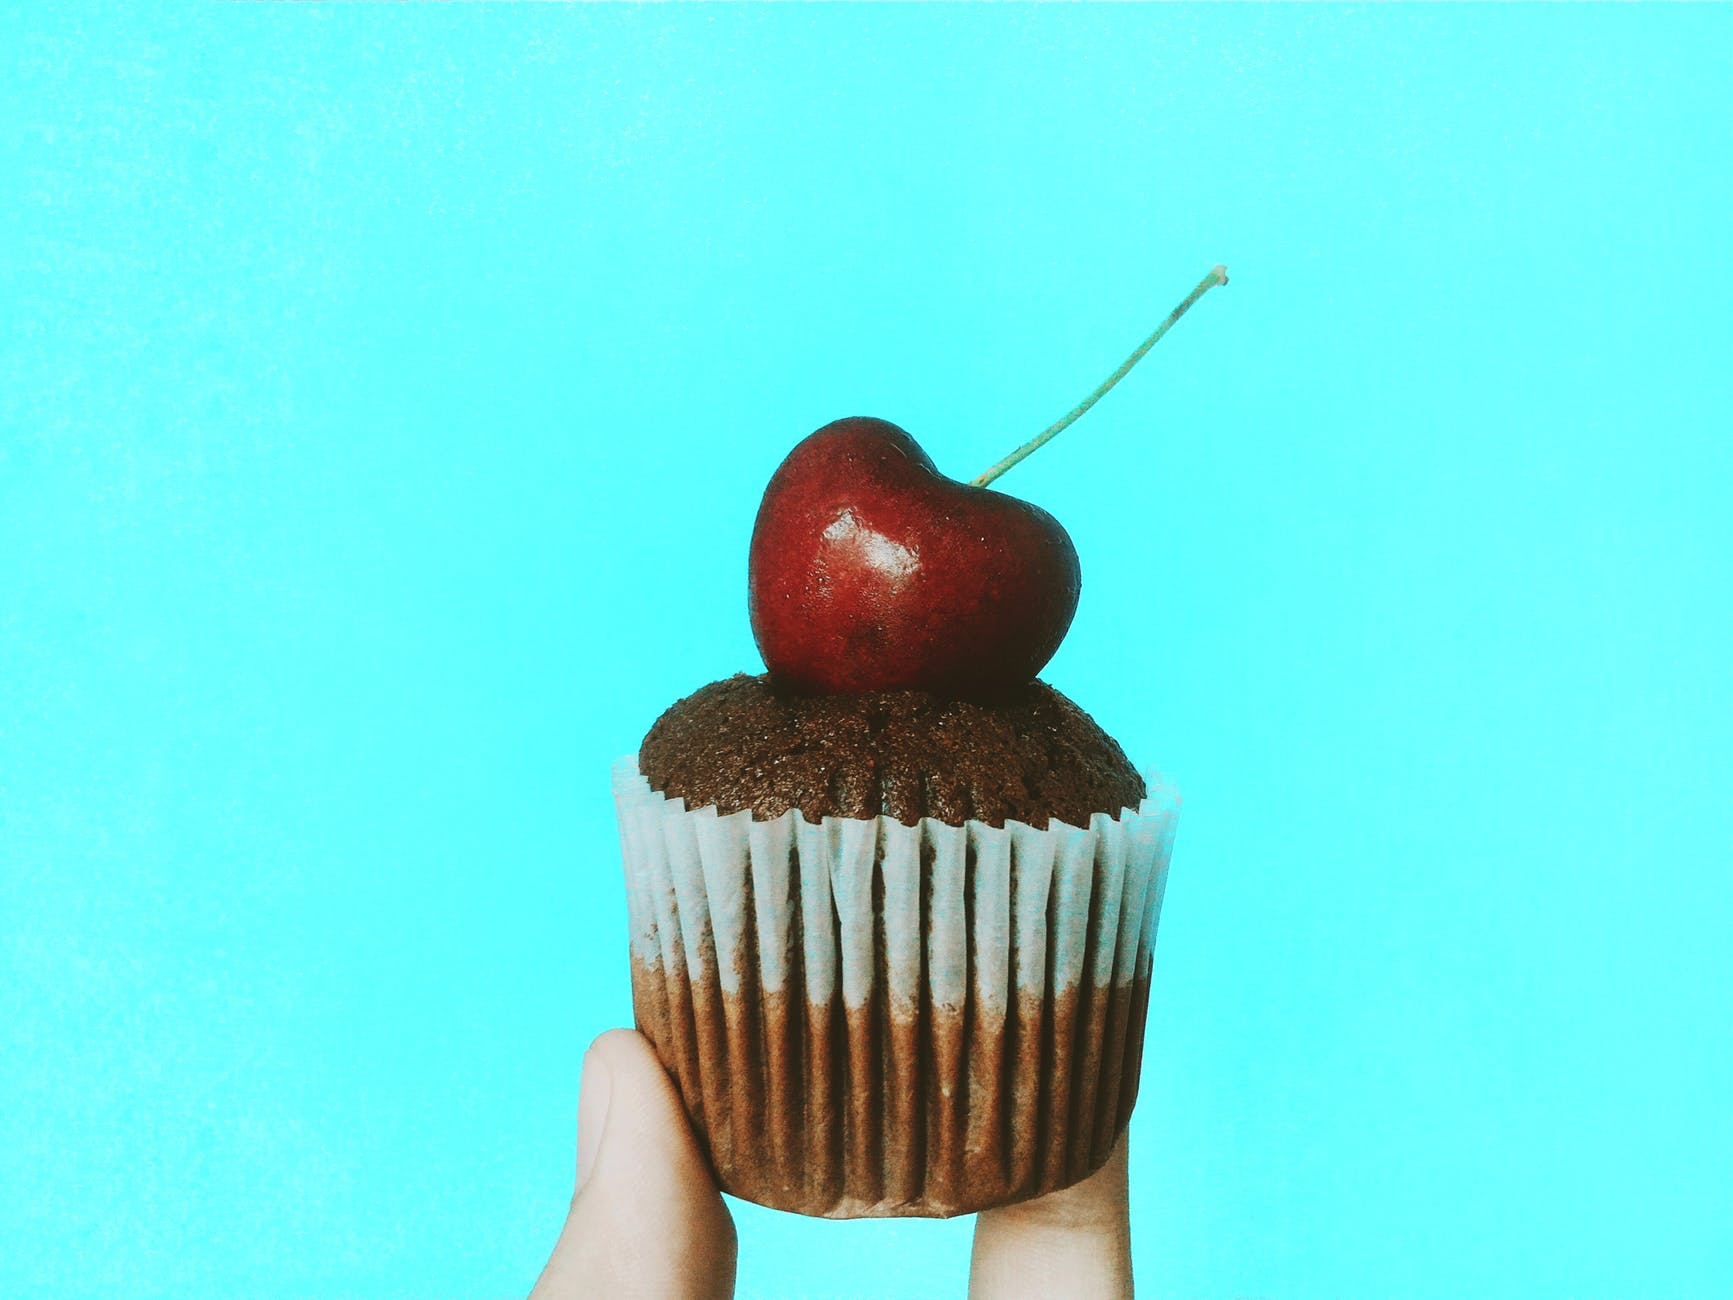 person holding chocolate cupcake with cherry topping